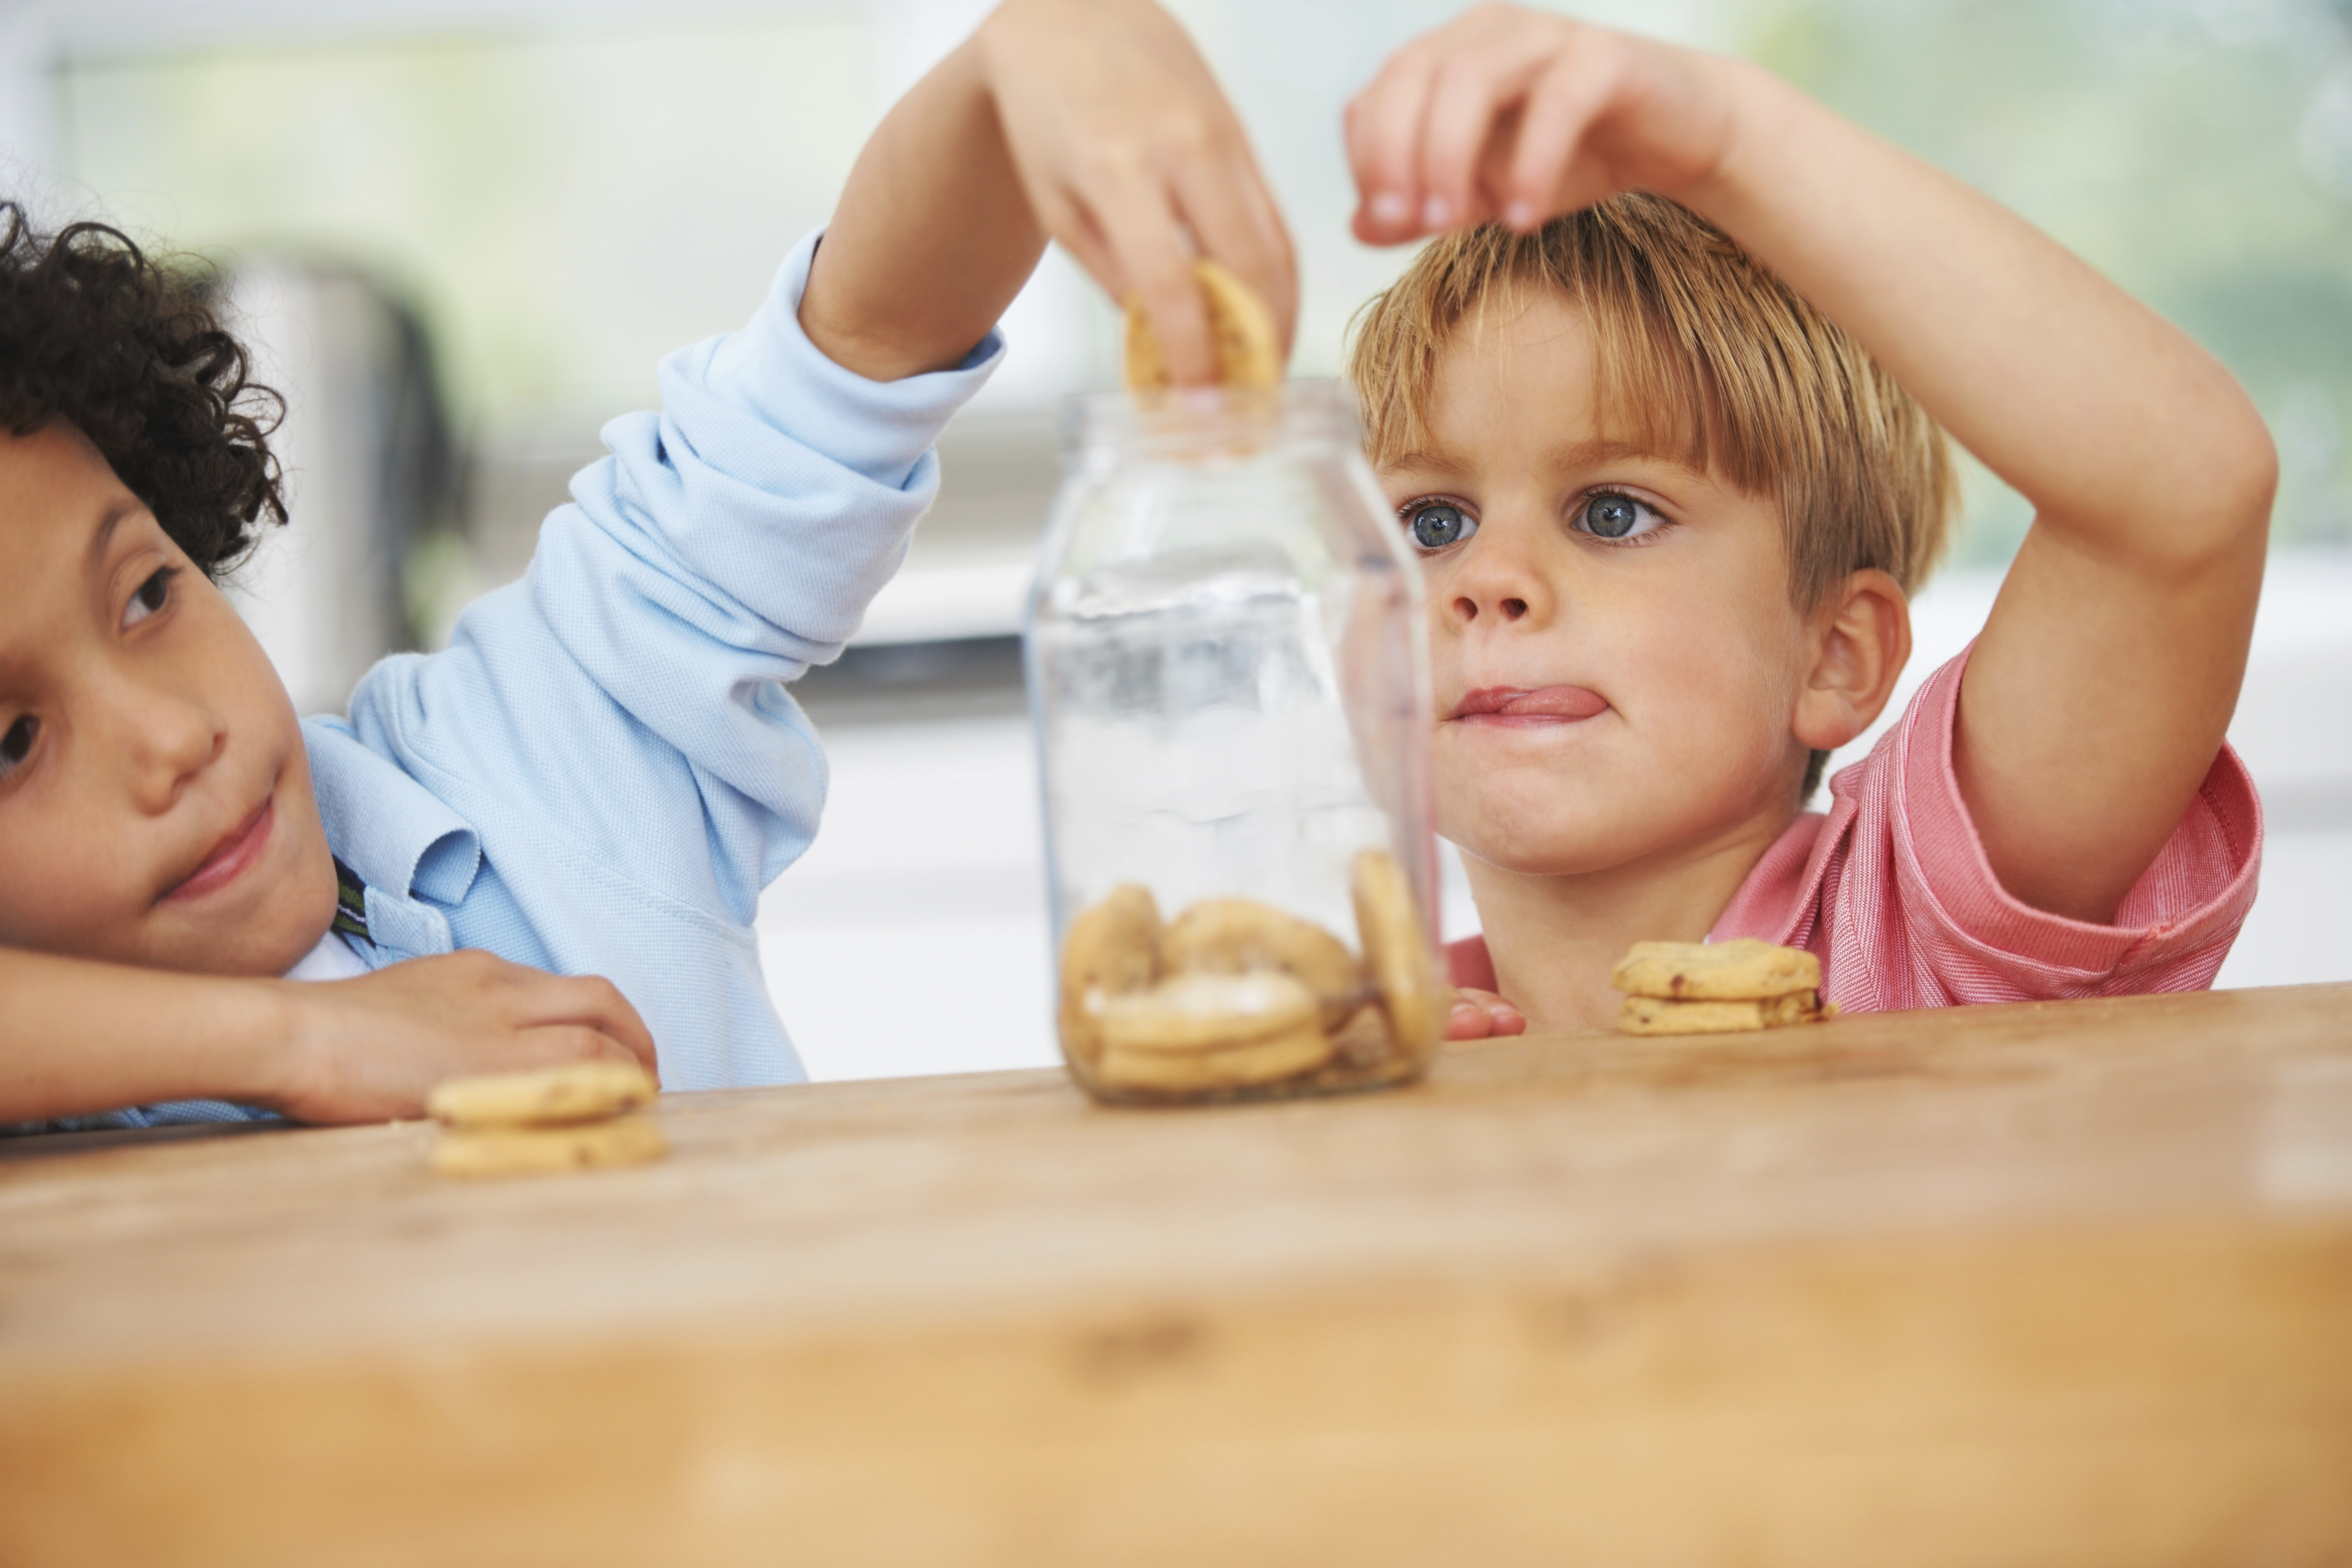 Two cute young boys taking cookies out from a jar in the kitchen